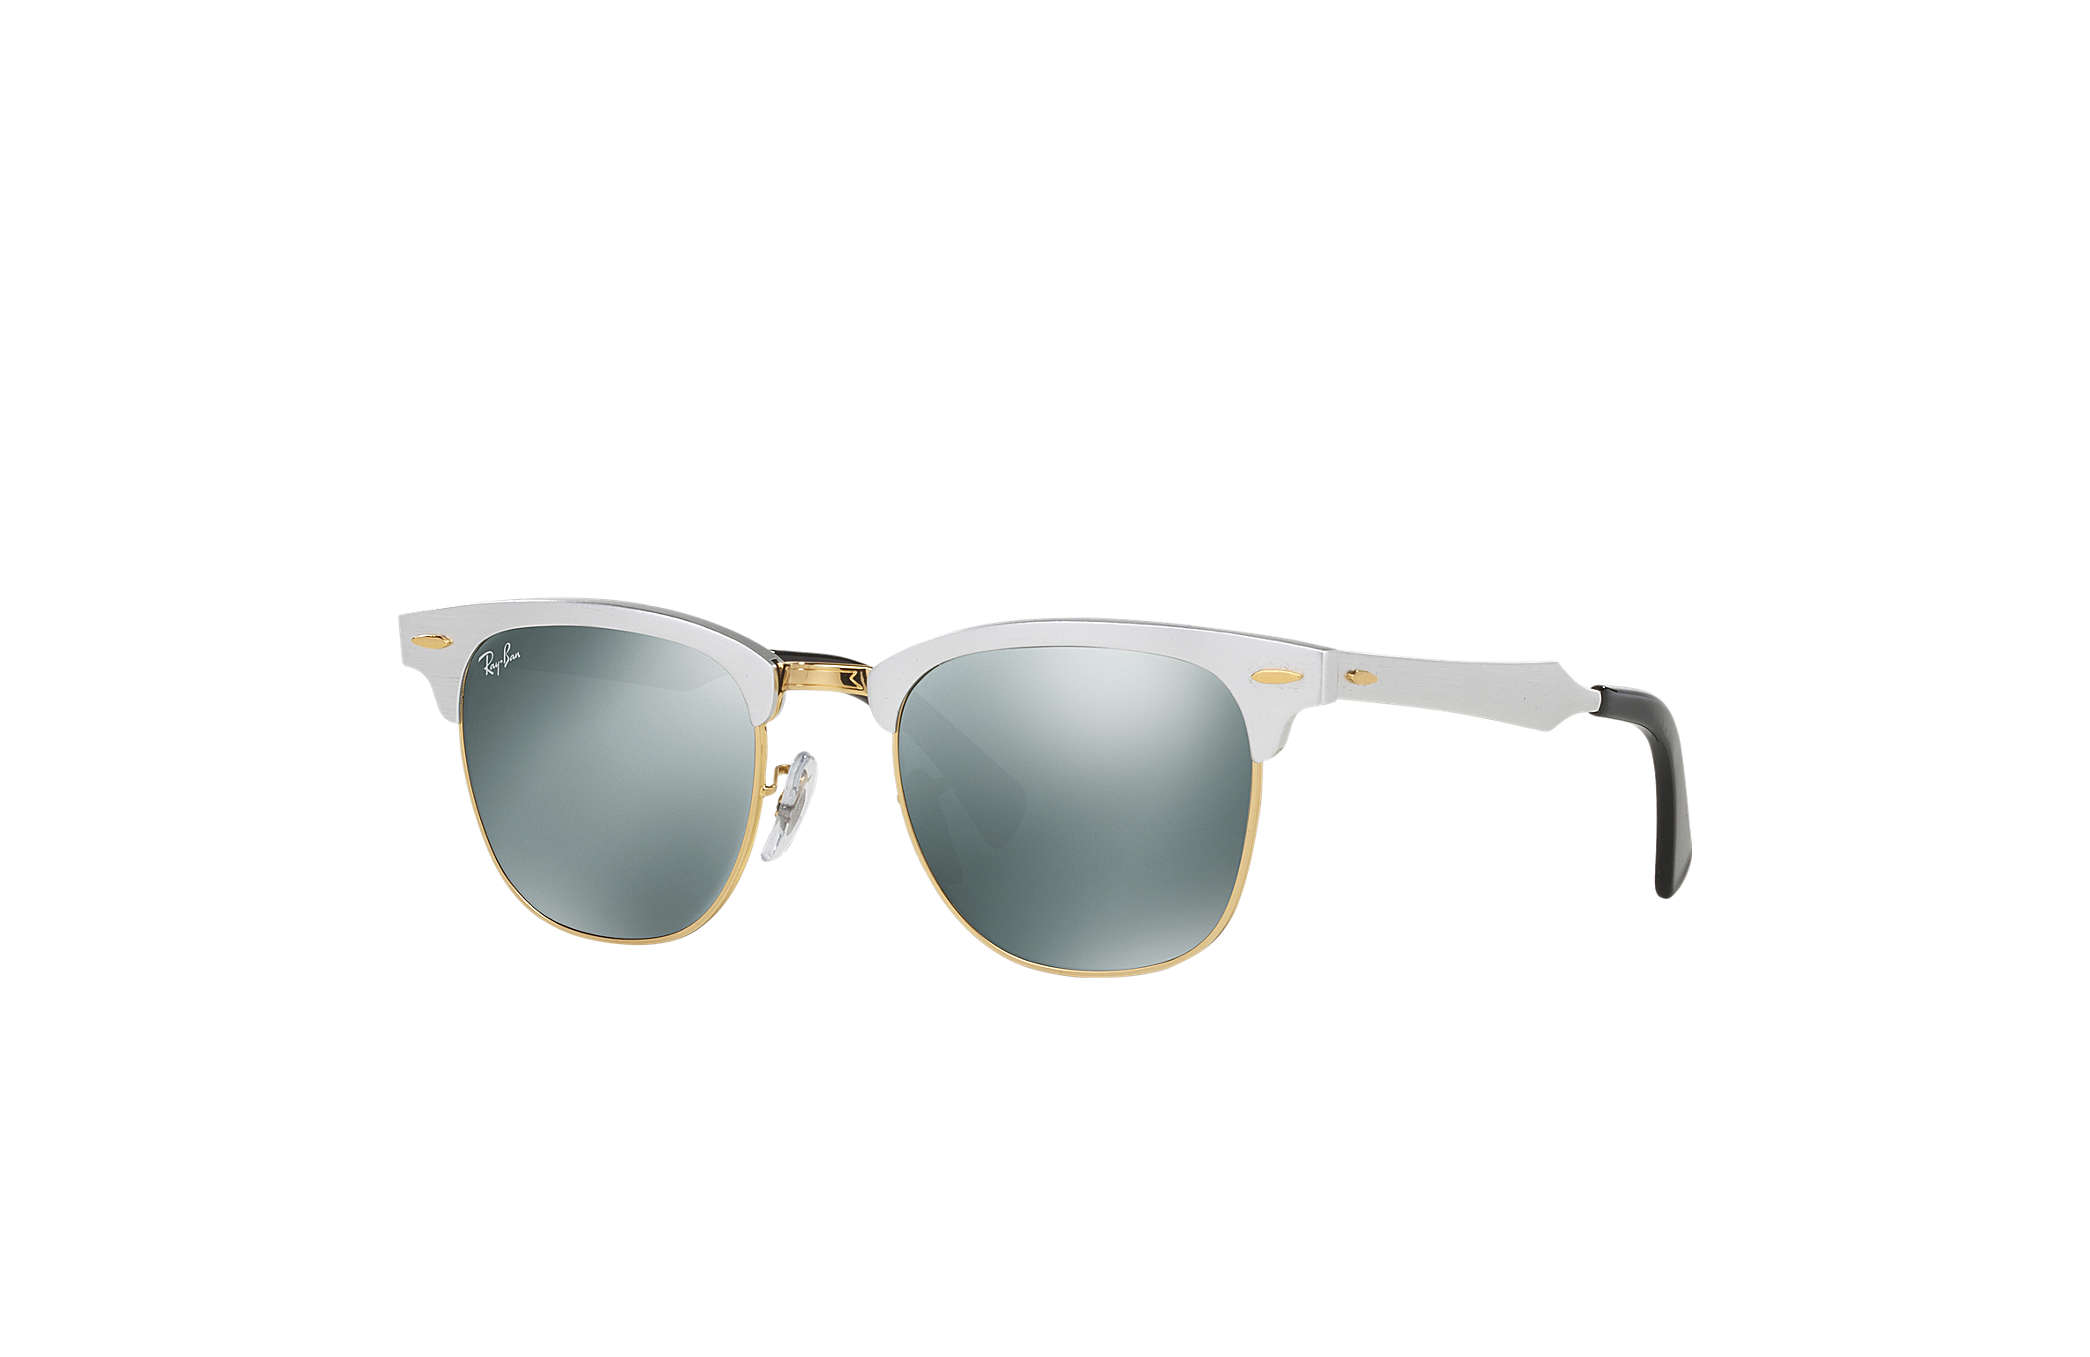 ray ban clubmaster noir argent